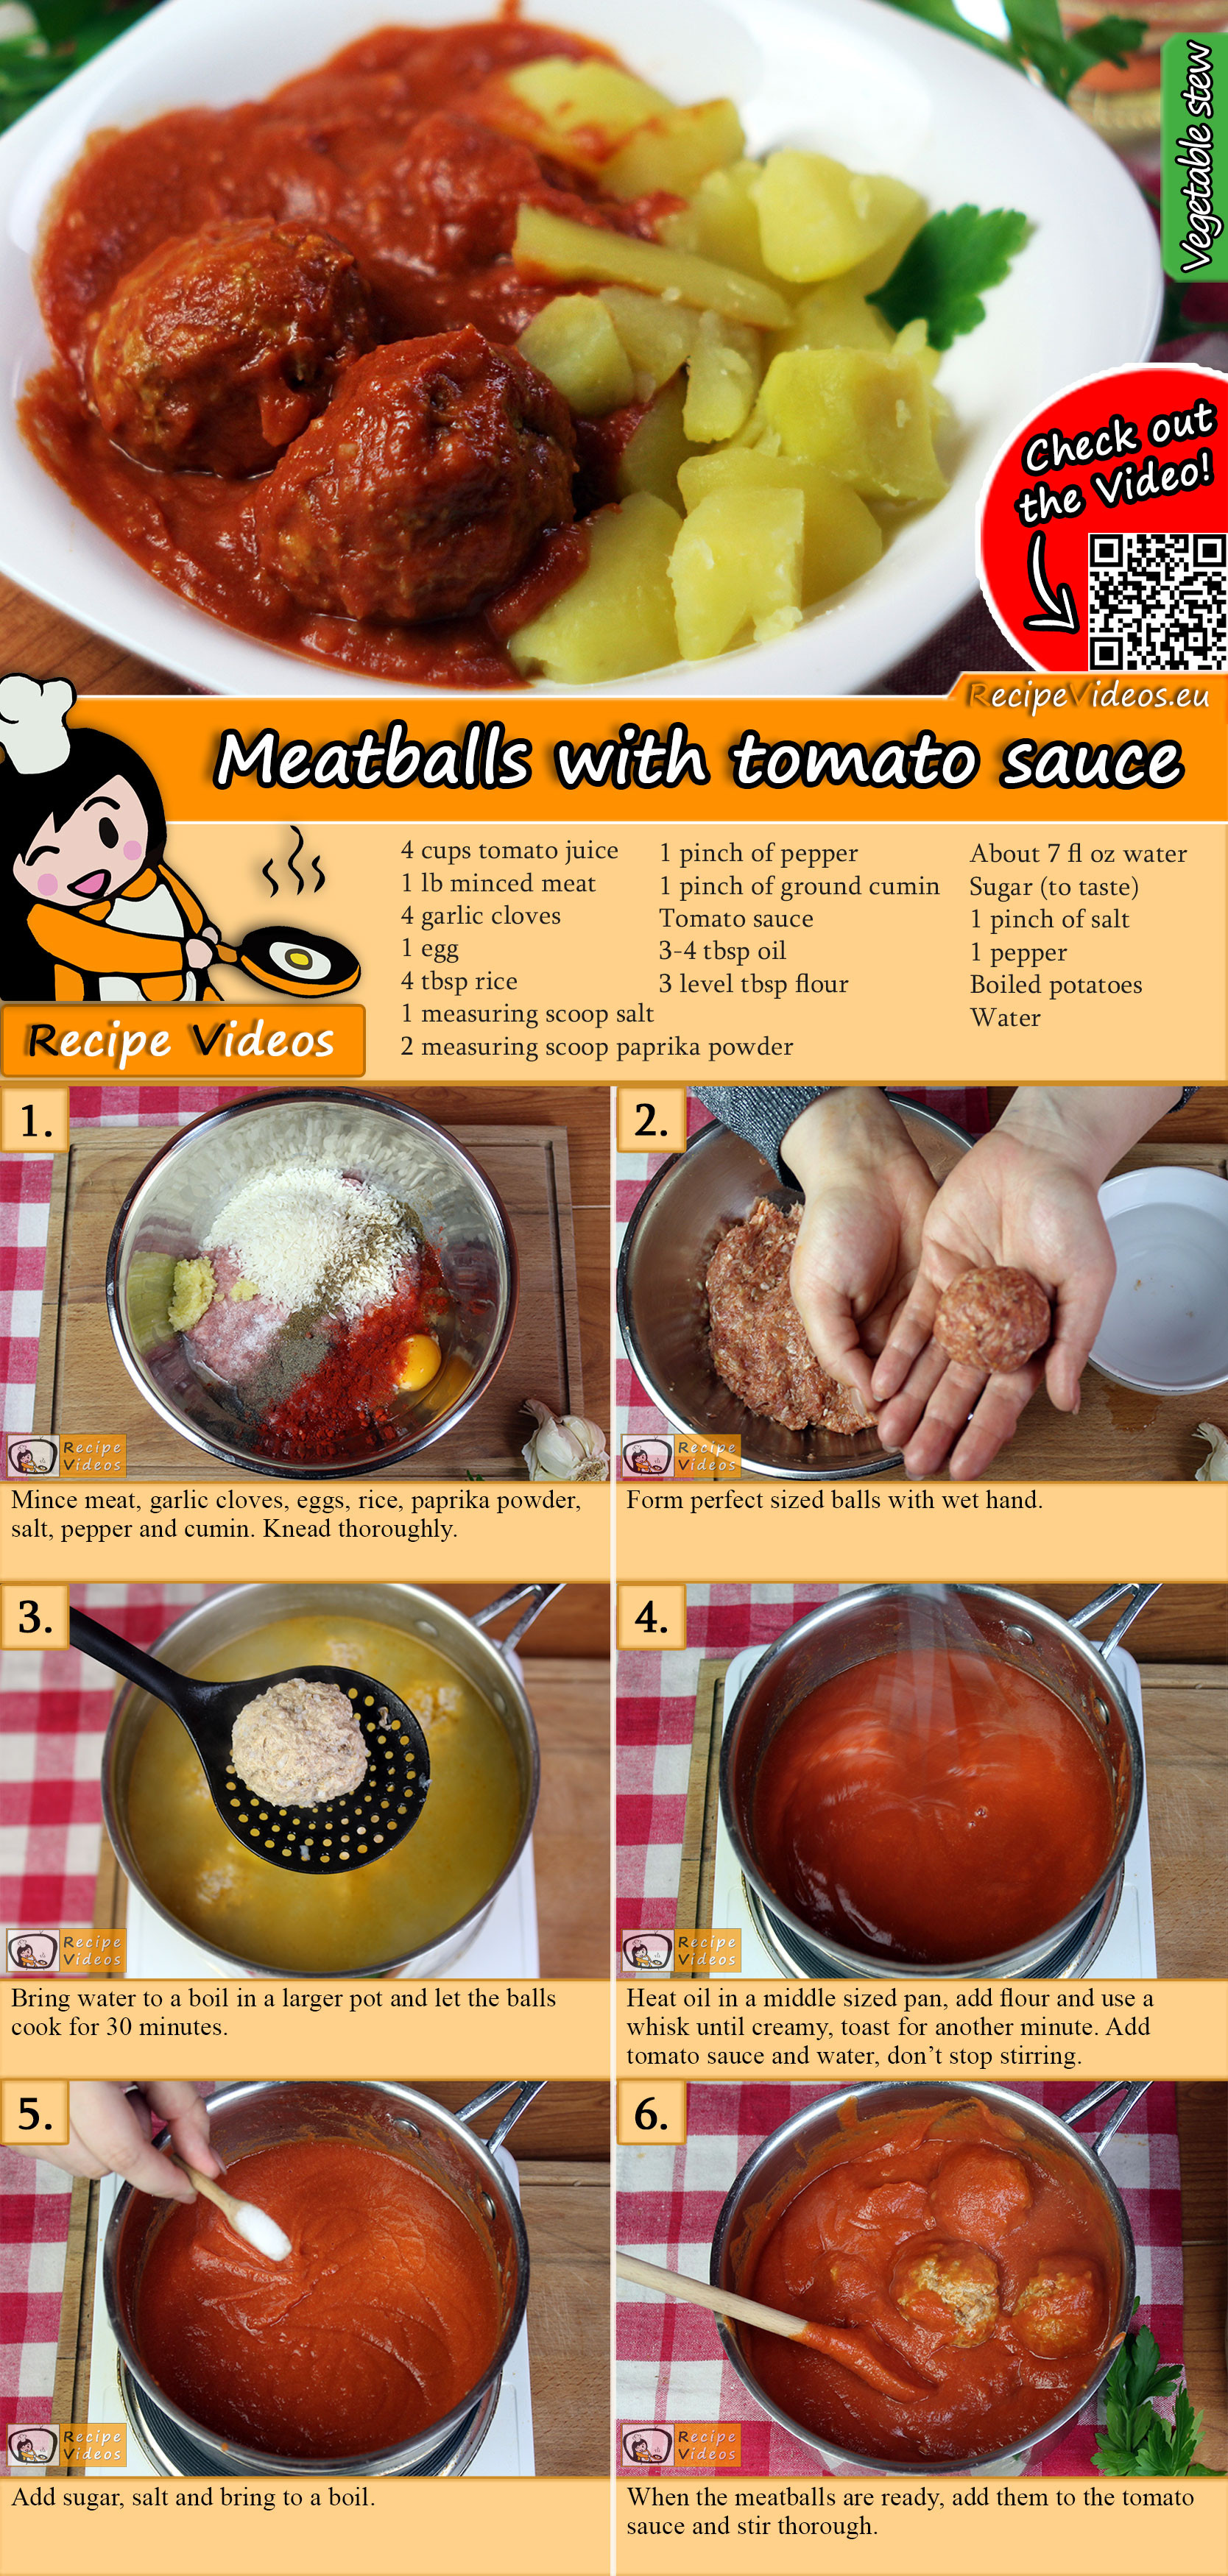 Meatballs with tomato sauce recipe with video